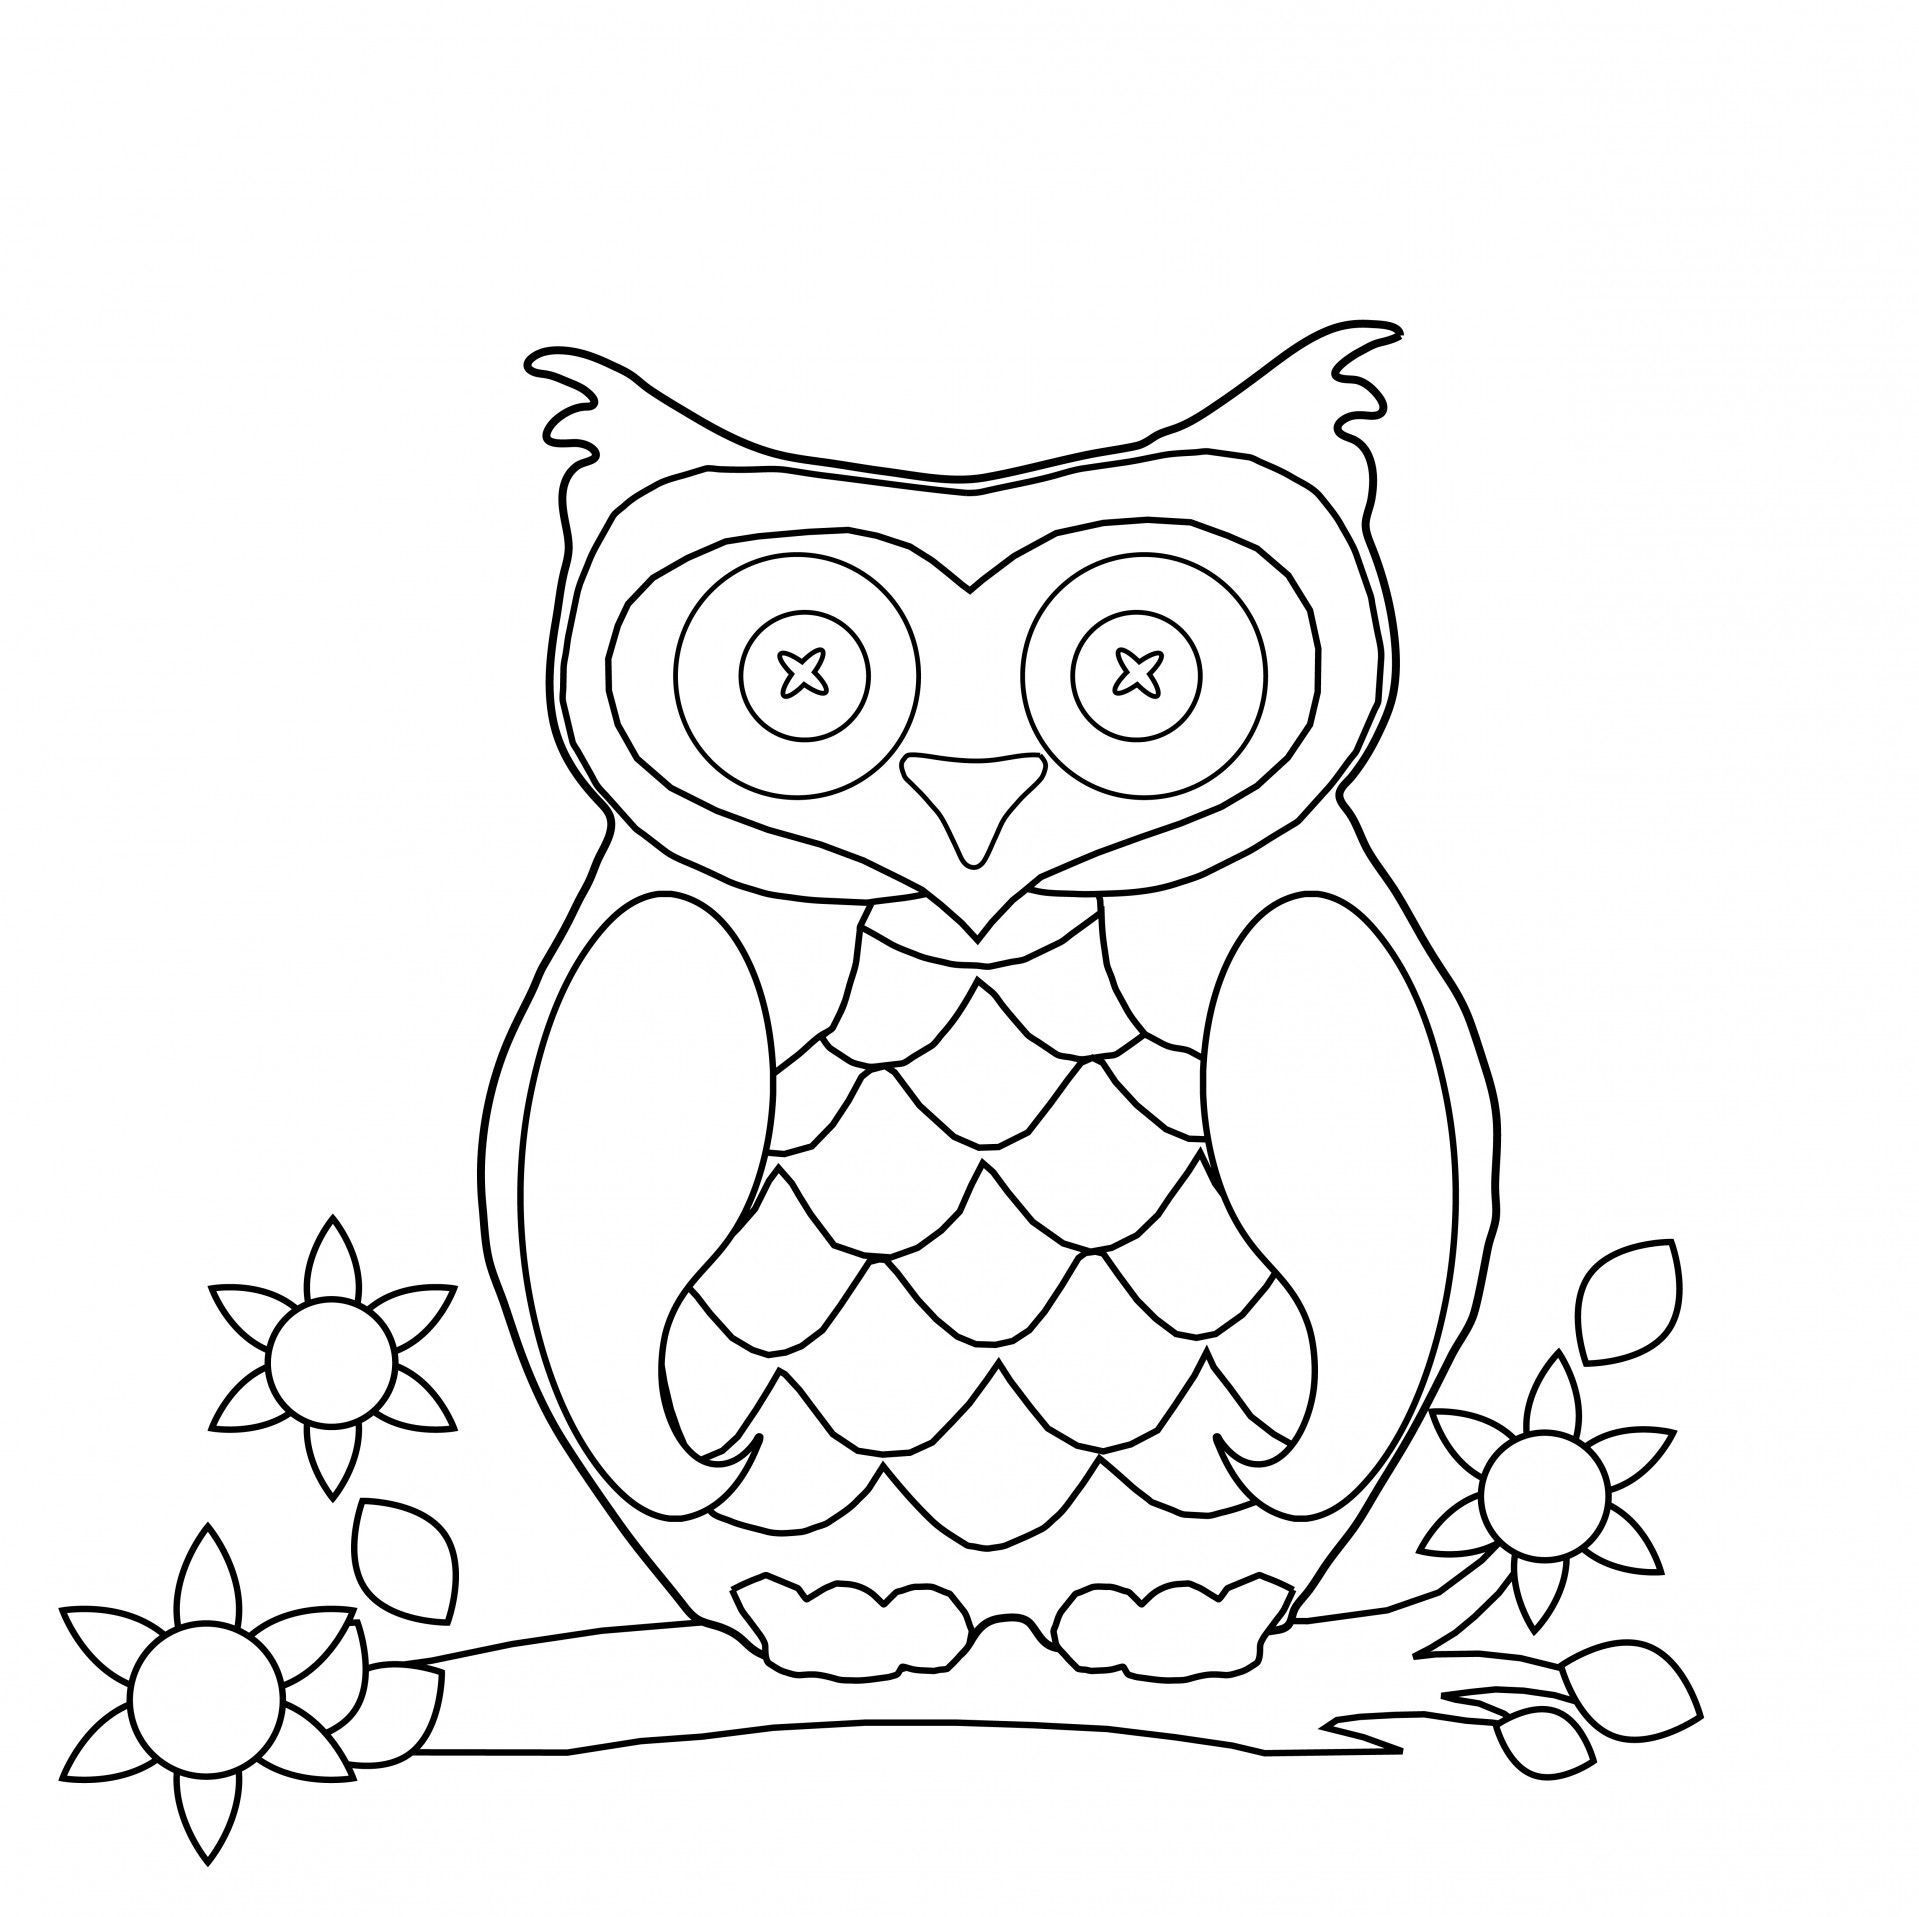 owl+coloring+pages | Owl Coloring Page Clipart by Karen Arnold ...